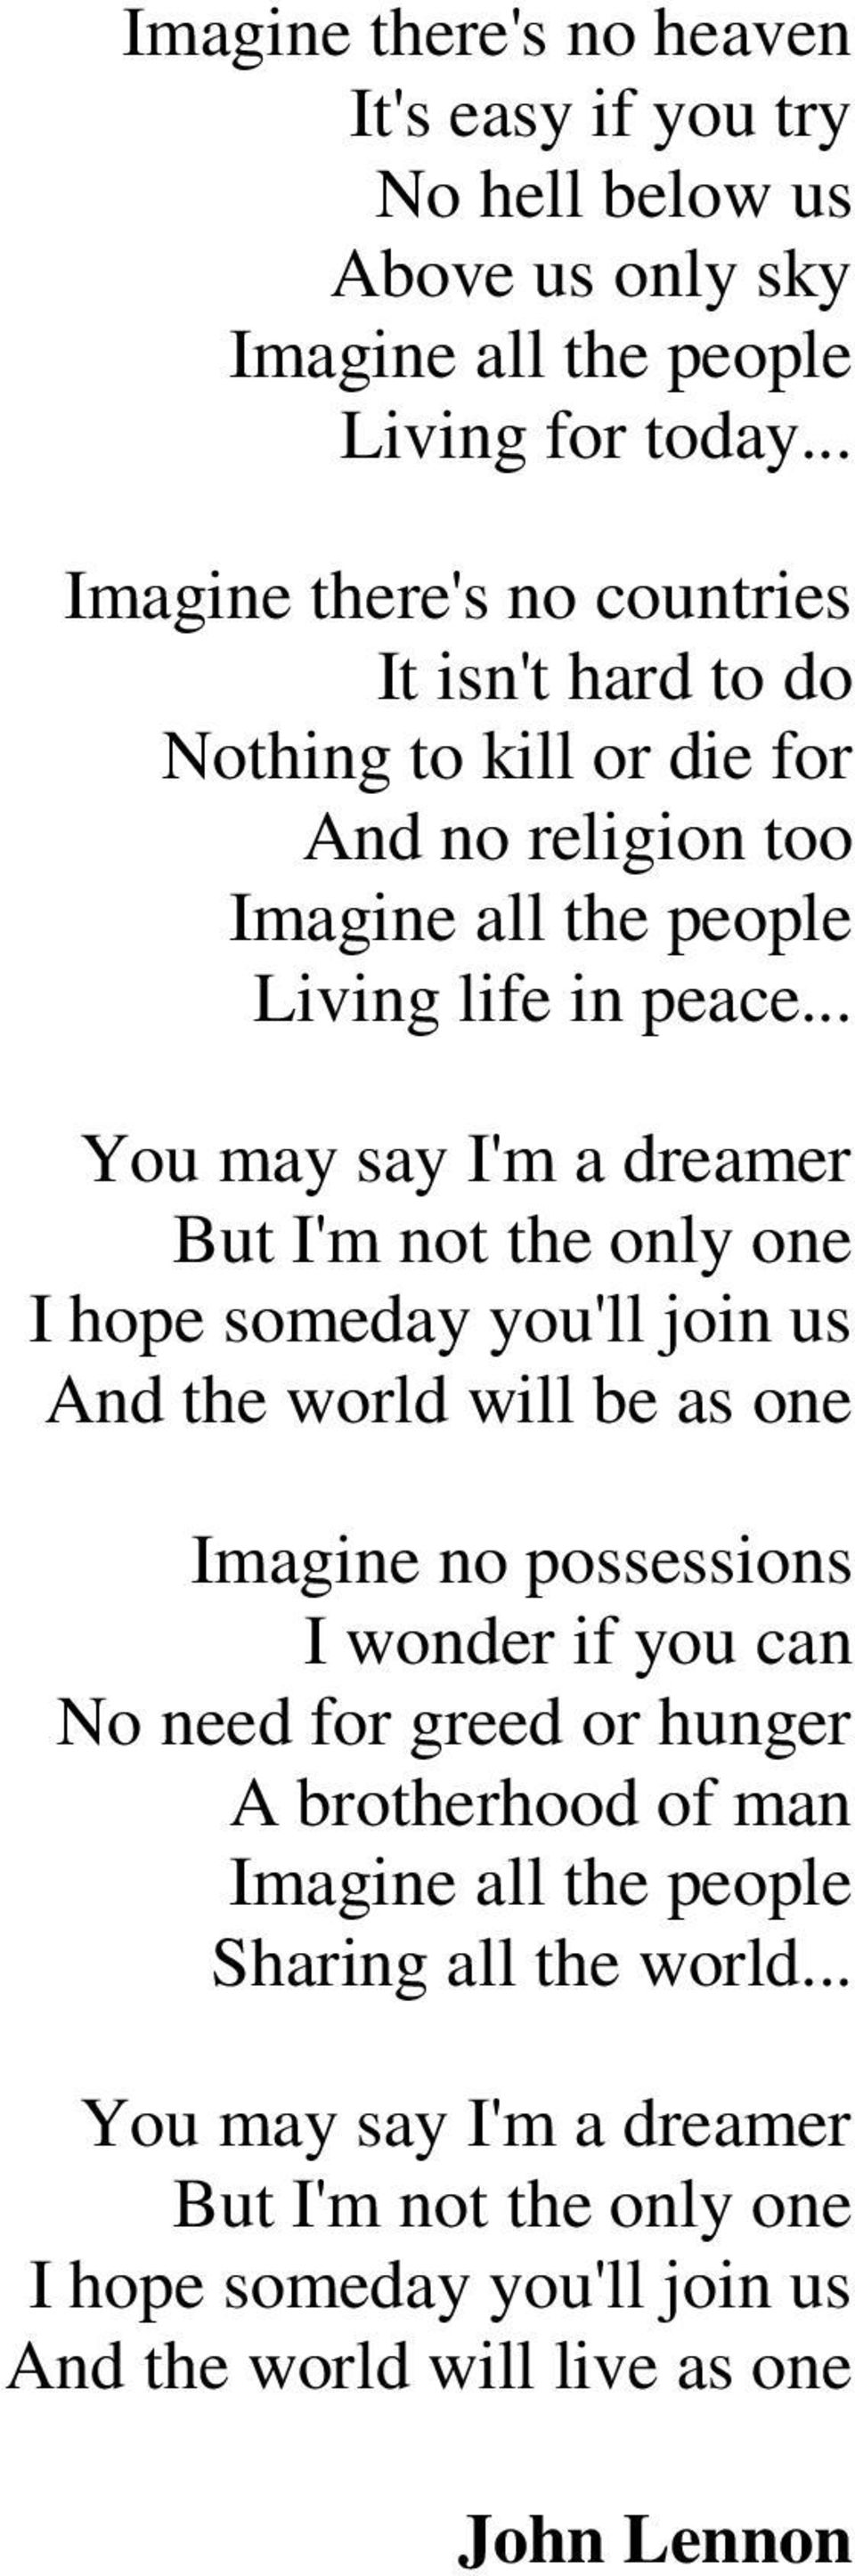 .. You may say I'm a dreamer But I'm not the only one I hope someday you'll join us And the world will be as one Imagine no possessions I wonder if you can No